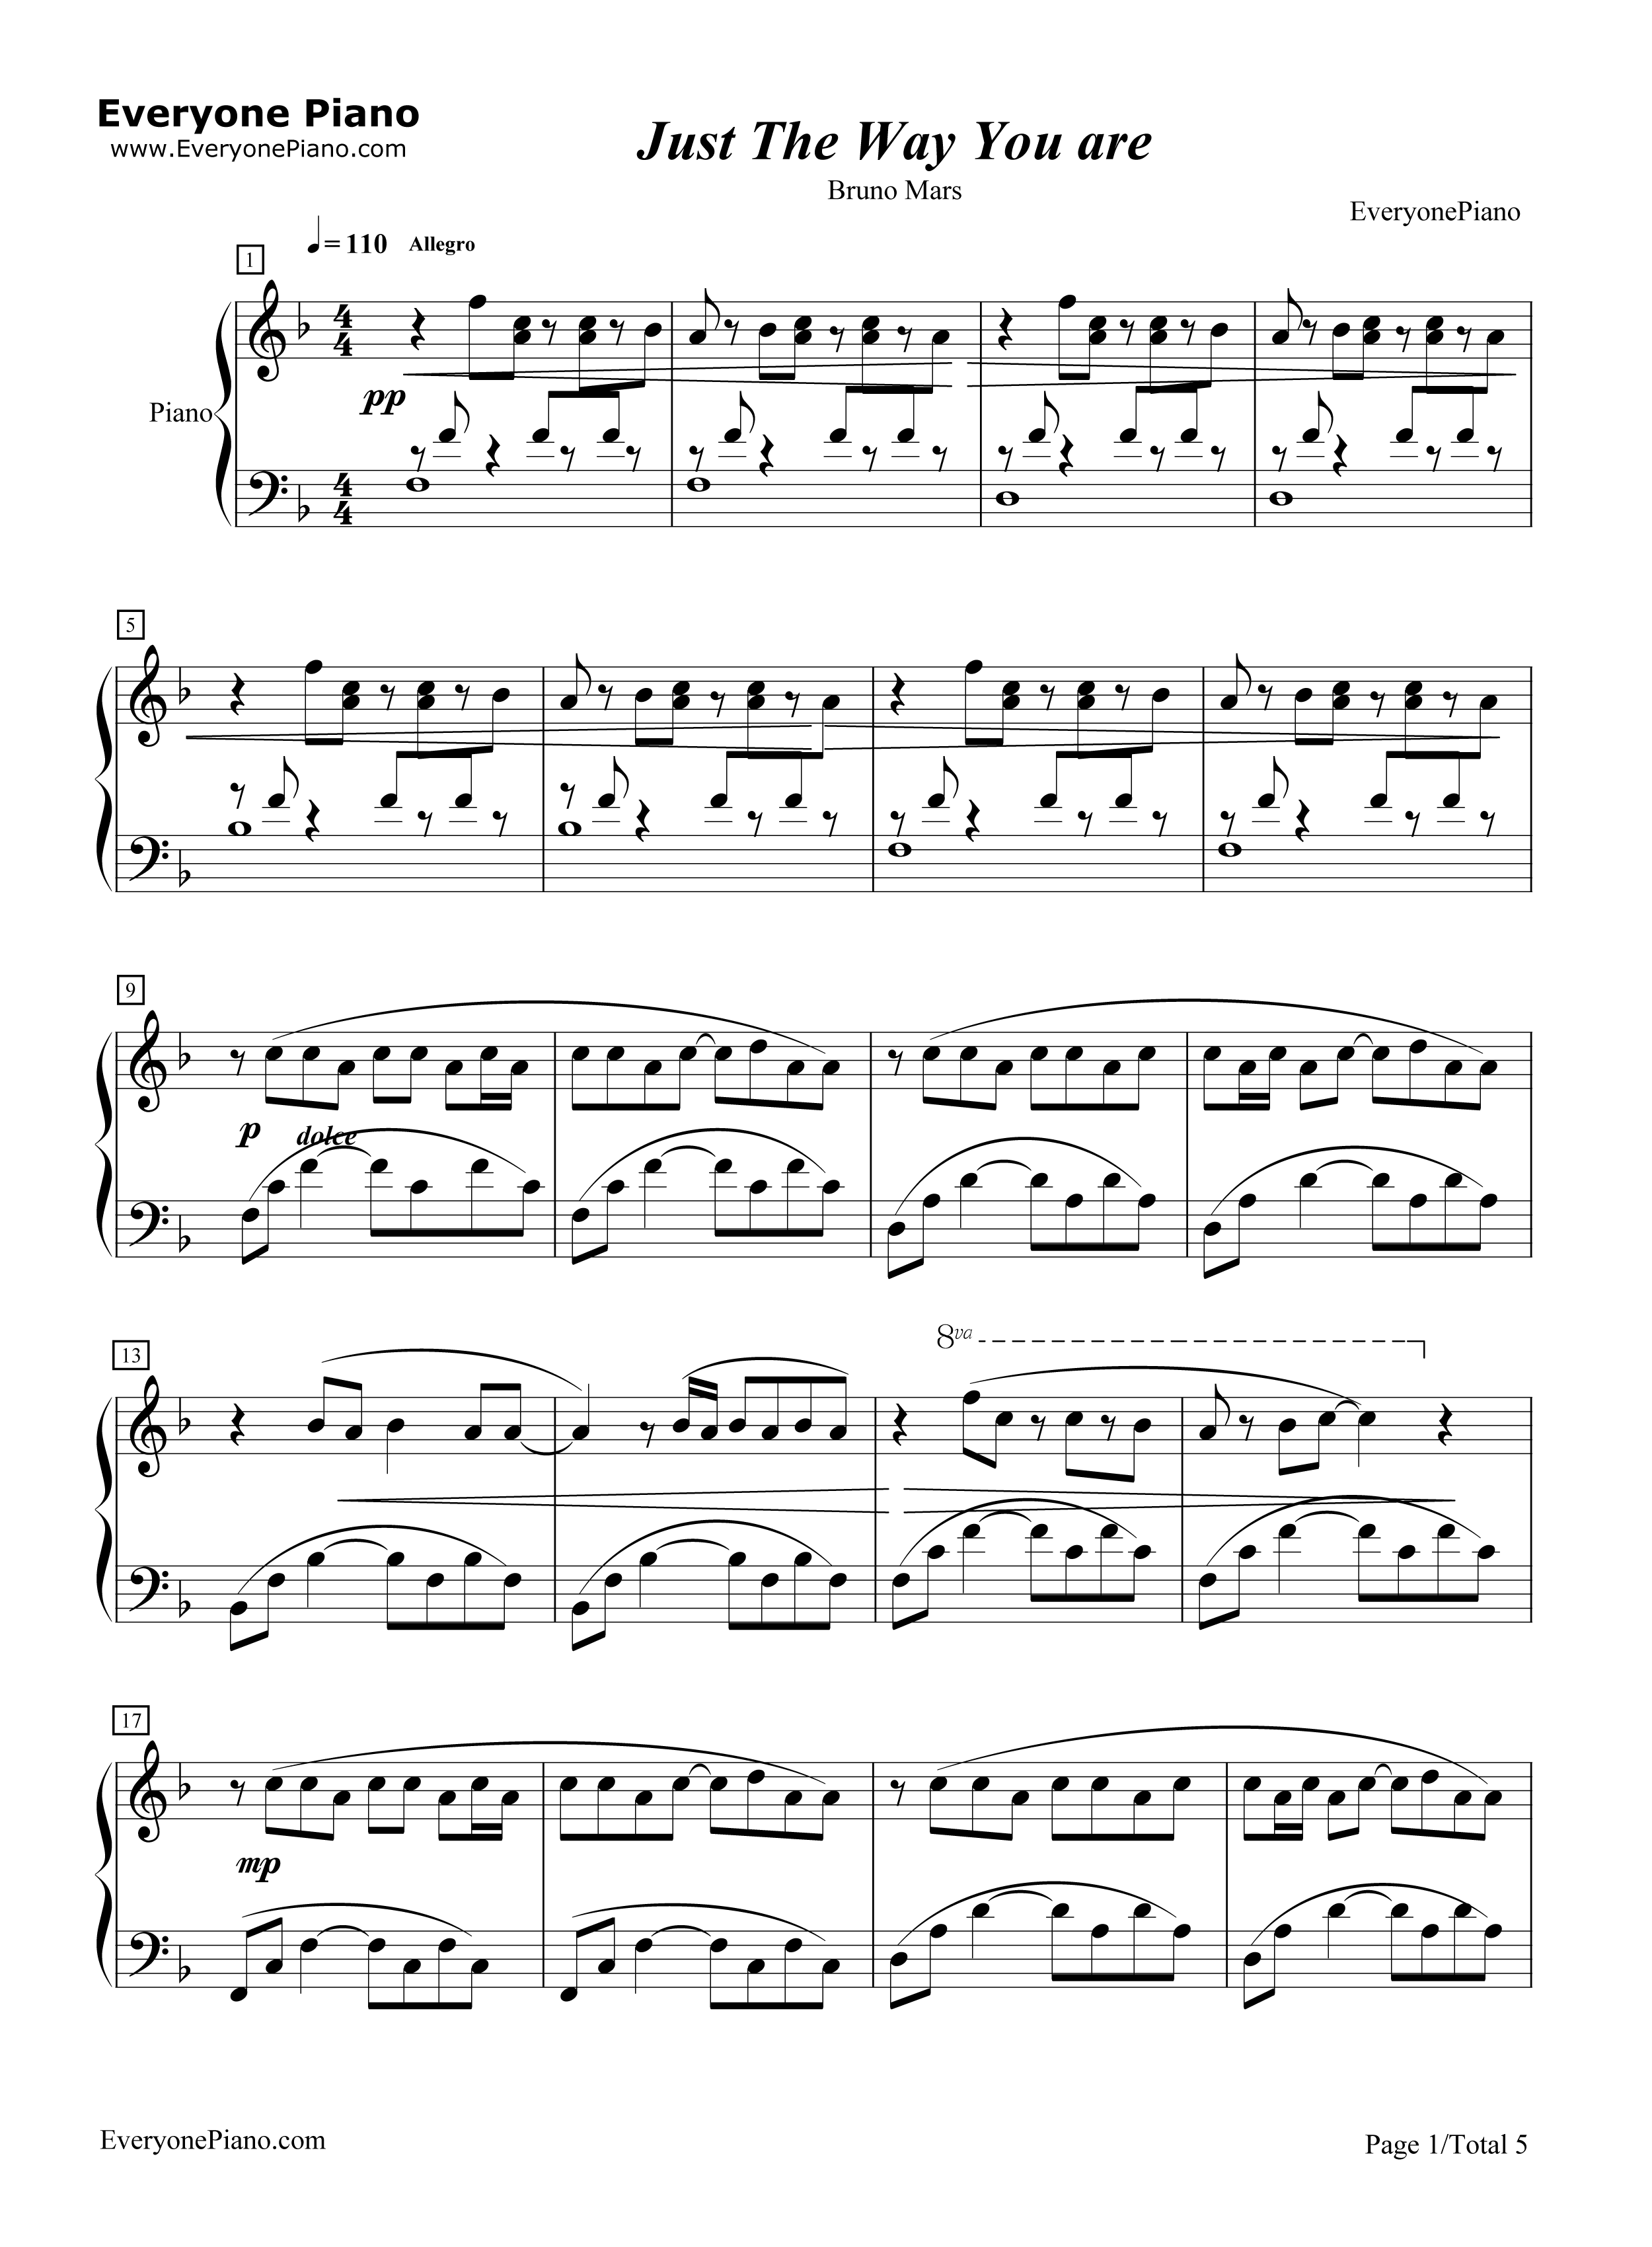 Just the Way You Are-Bruno Mars Stave Preview 1-Free Piano Sheet Music u0026 Piano Chords